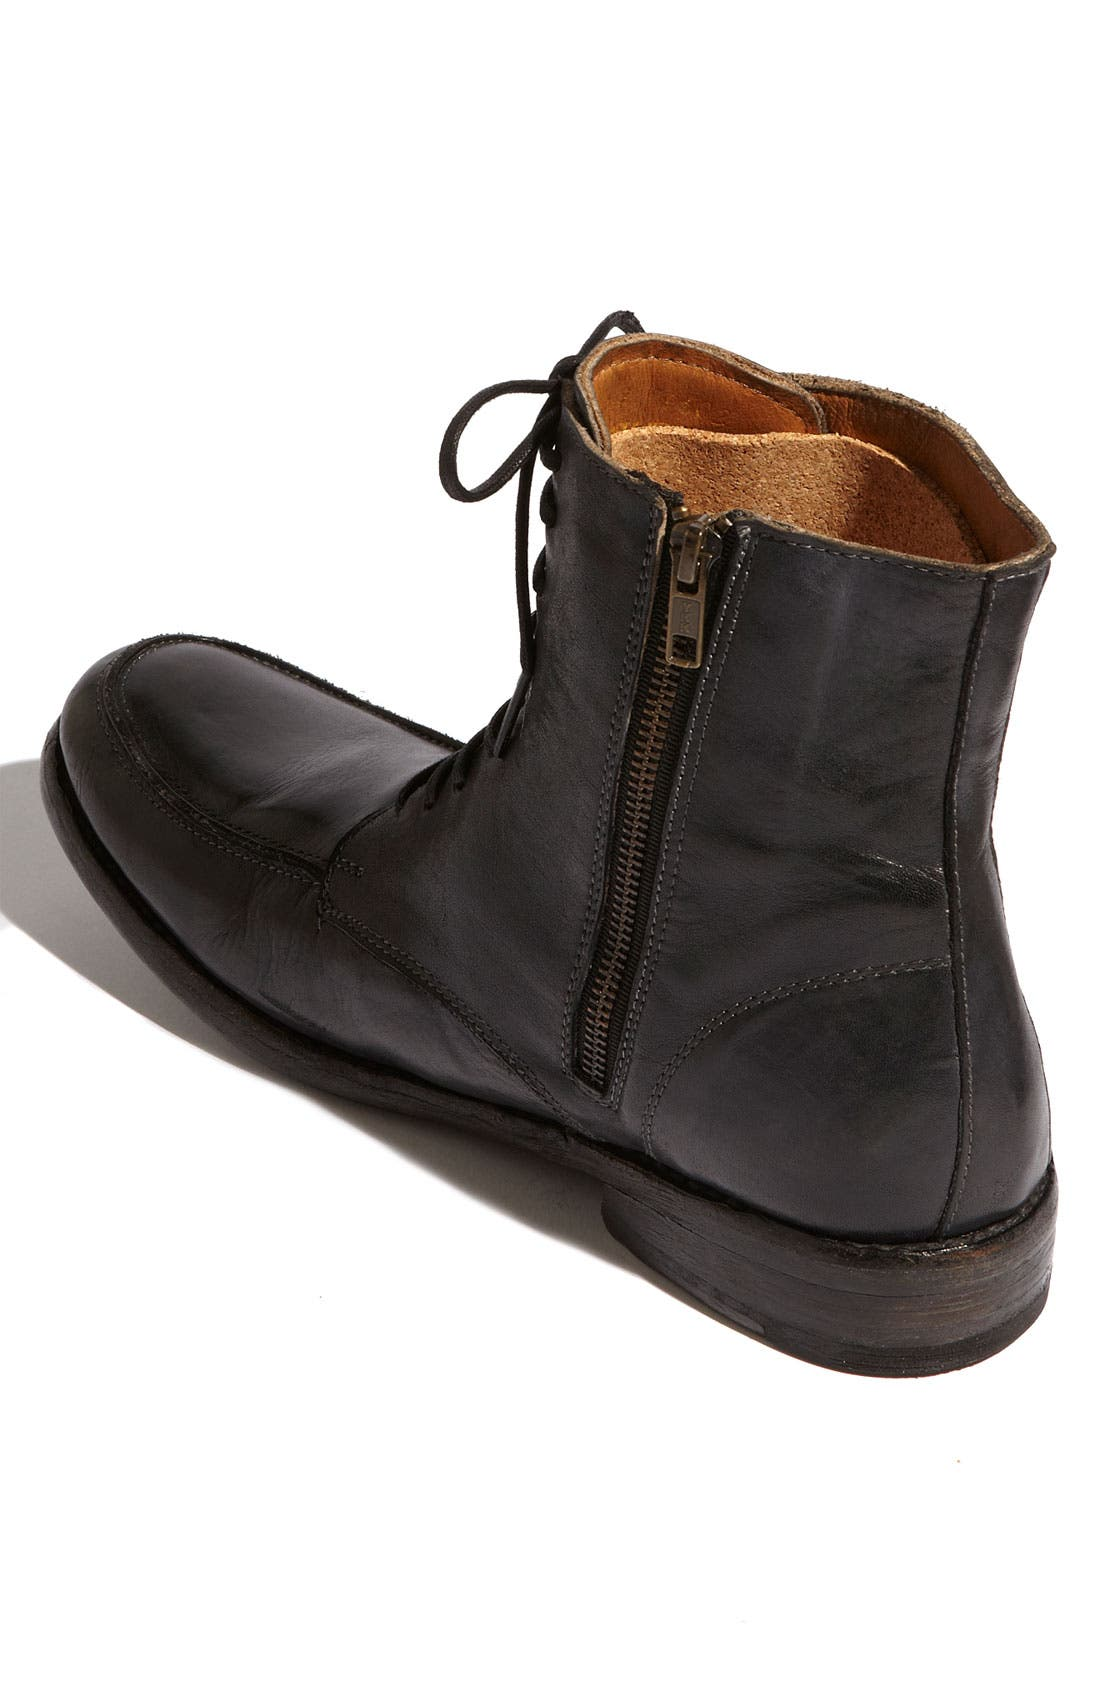 'Leo' Boot,                             Alternate thumbnail 3, color,                             Black Rustic